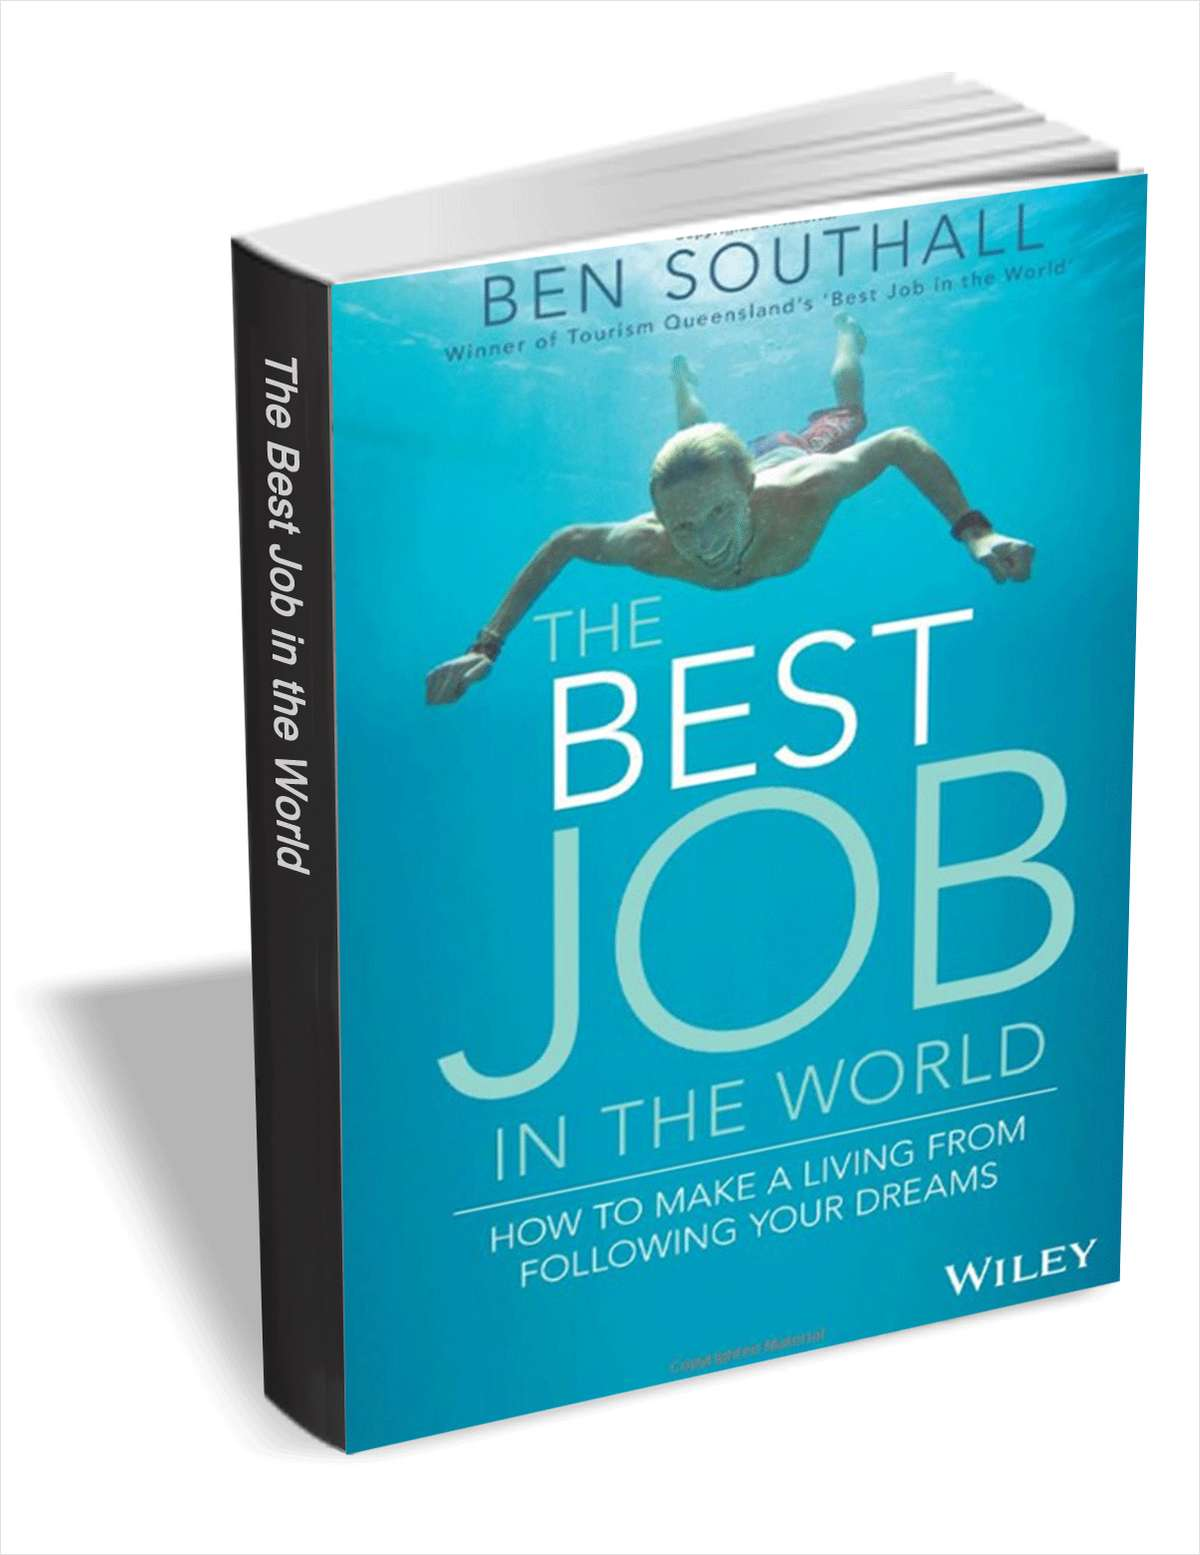 The Best Job in the World - How to Make a Living From Following Your Dreams ($19 Value) FREE For a Limited Time